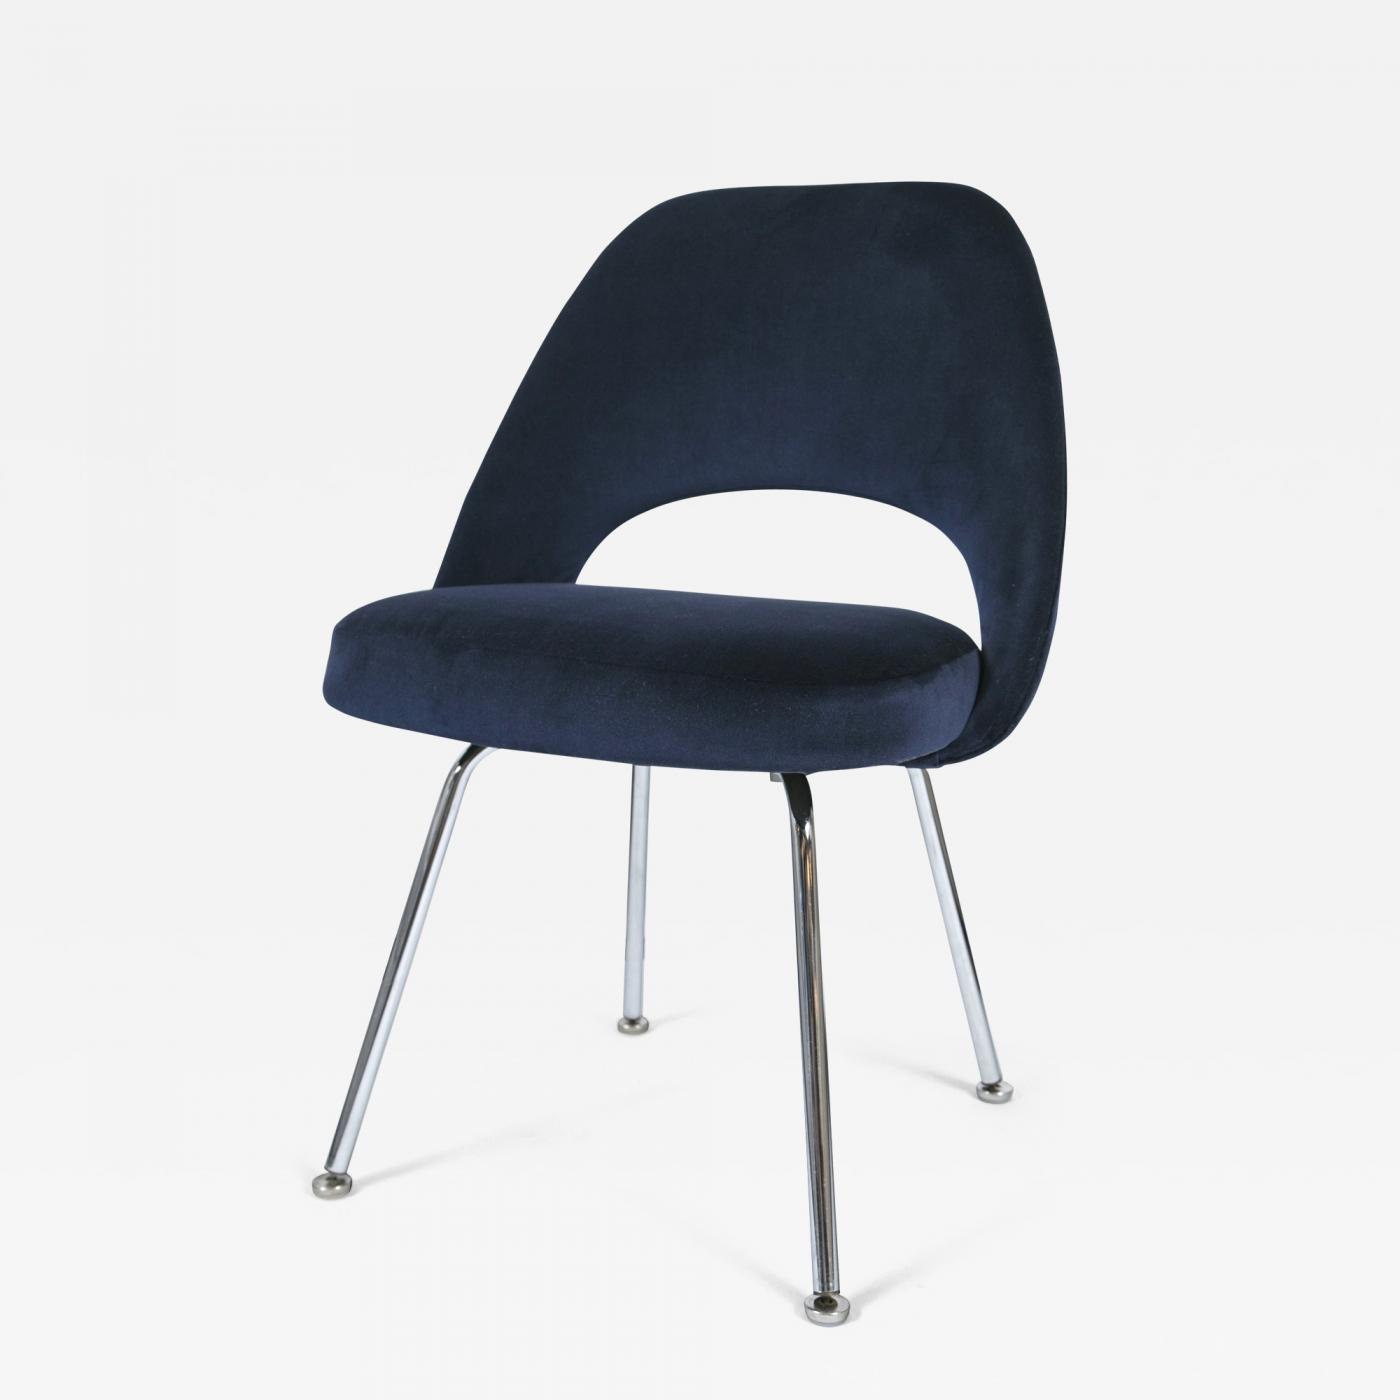 Eero saarinen saarinen executive armless chair in navy for Saarinen executive armless chair